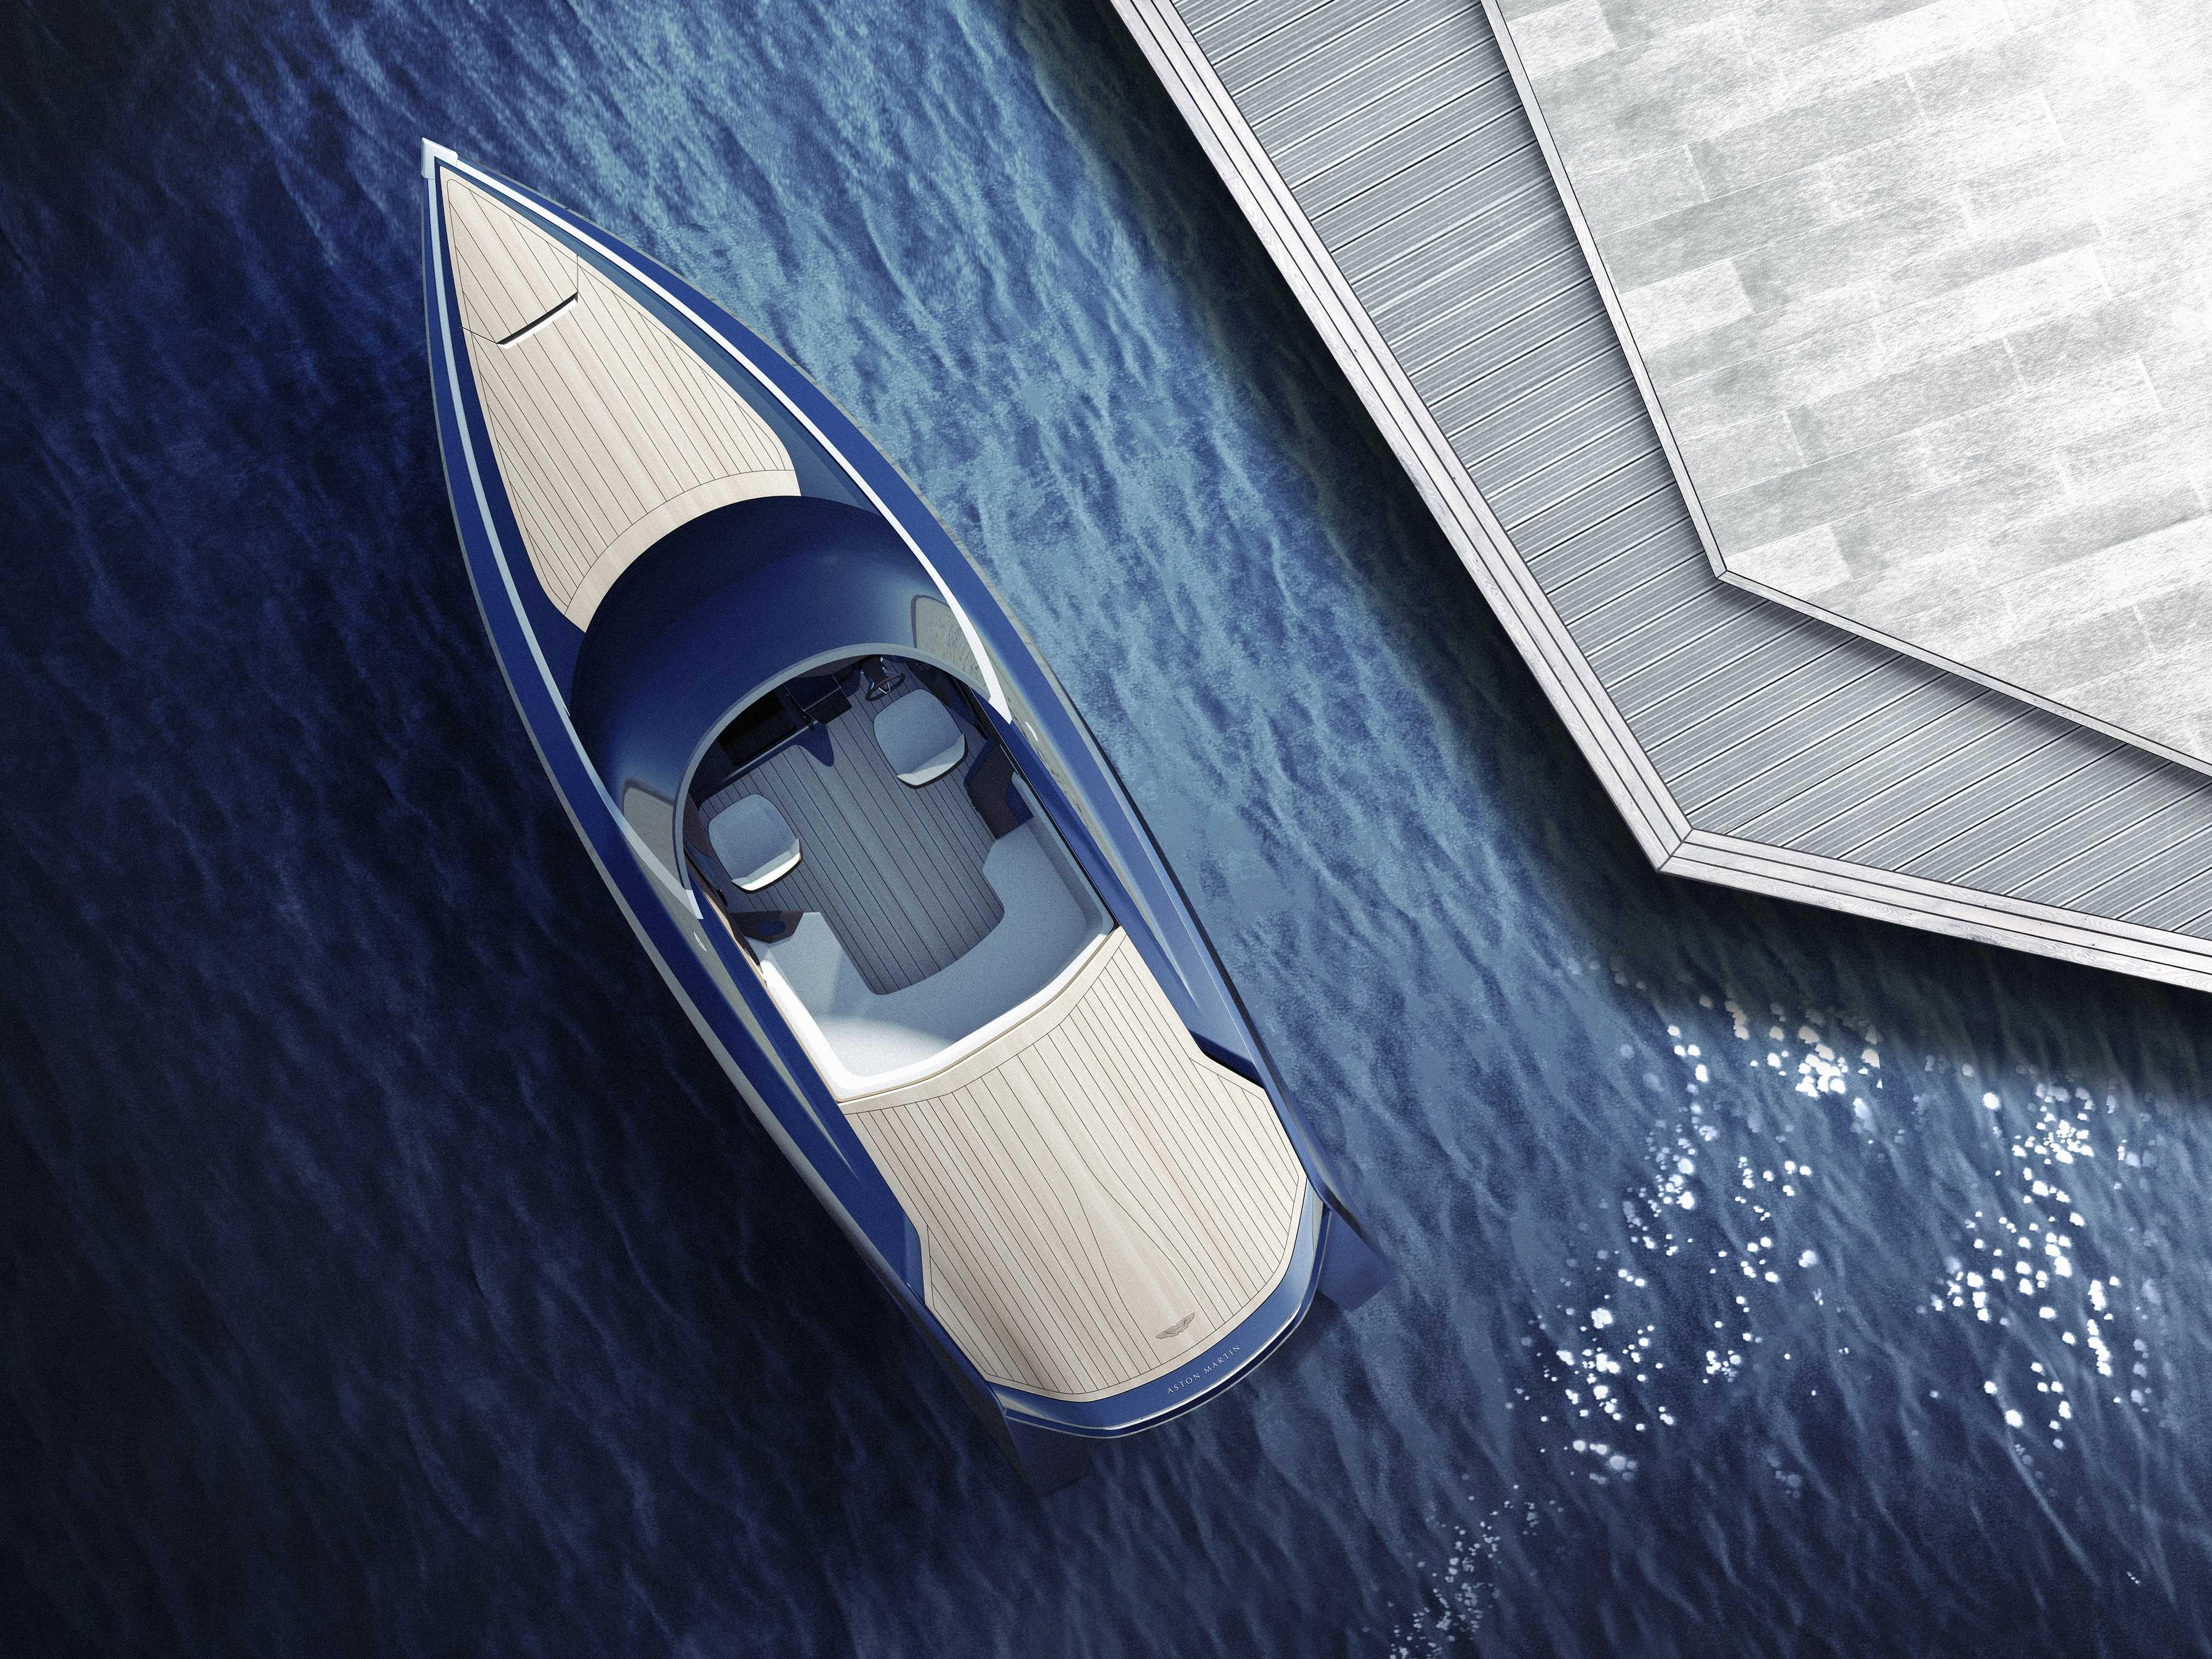 If you want Aston Martin's new power boat, you'll have to keep a secret